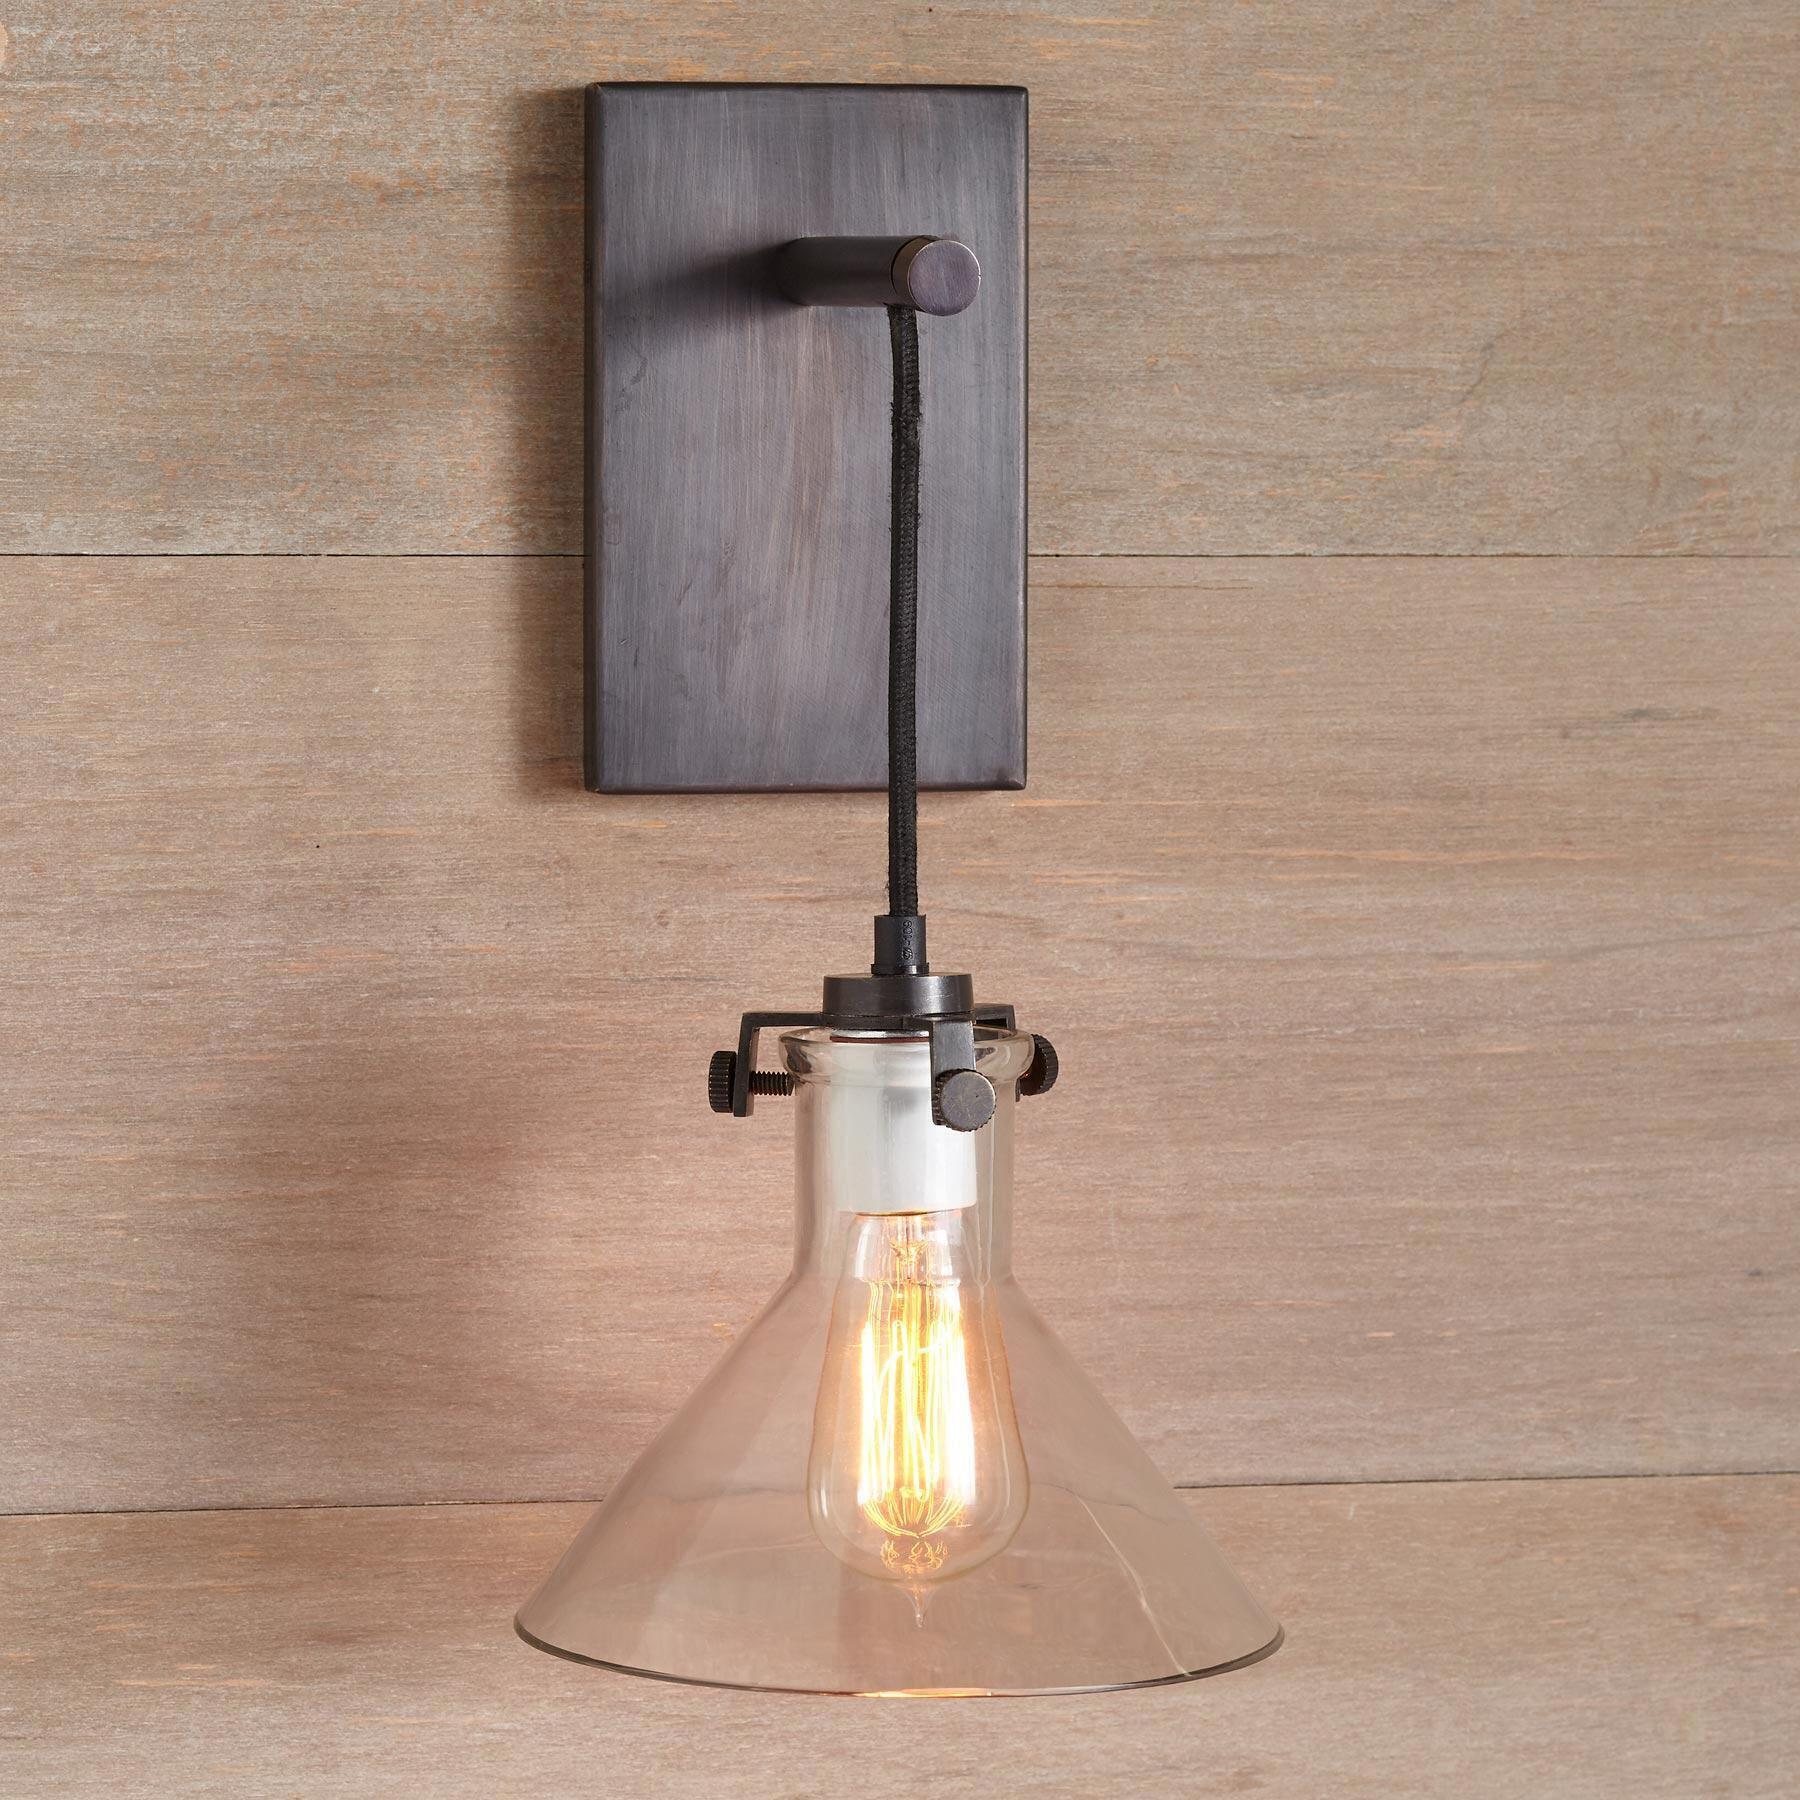 MERIDIAN SCONCE PENDANT LIGHT: View 1